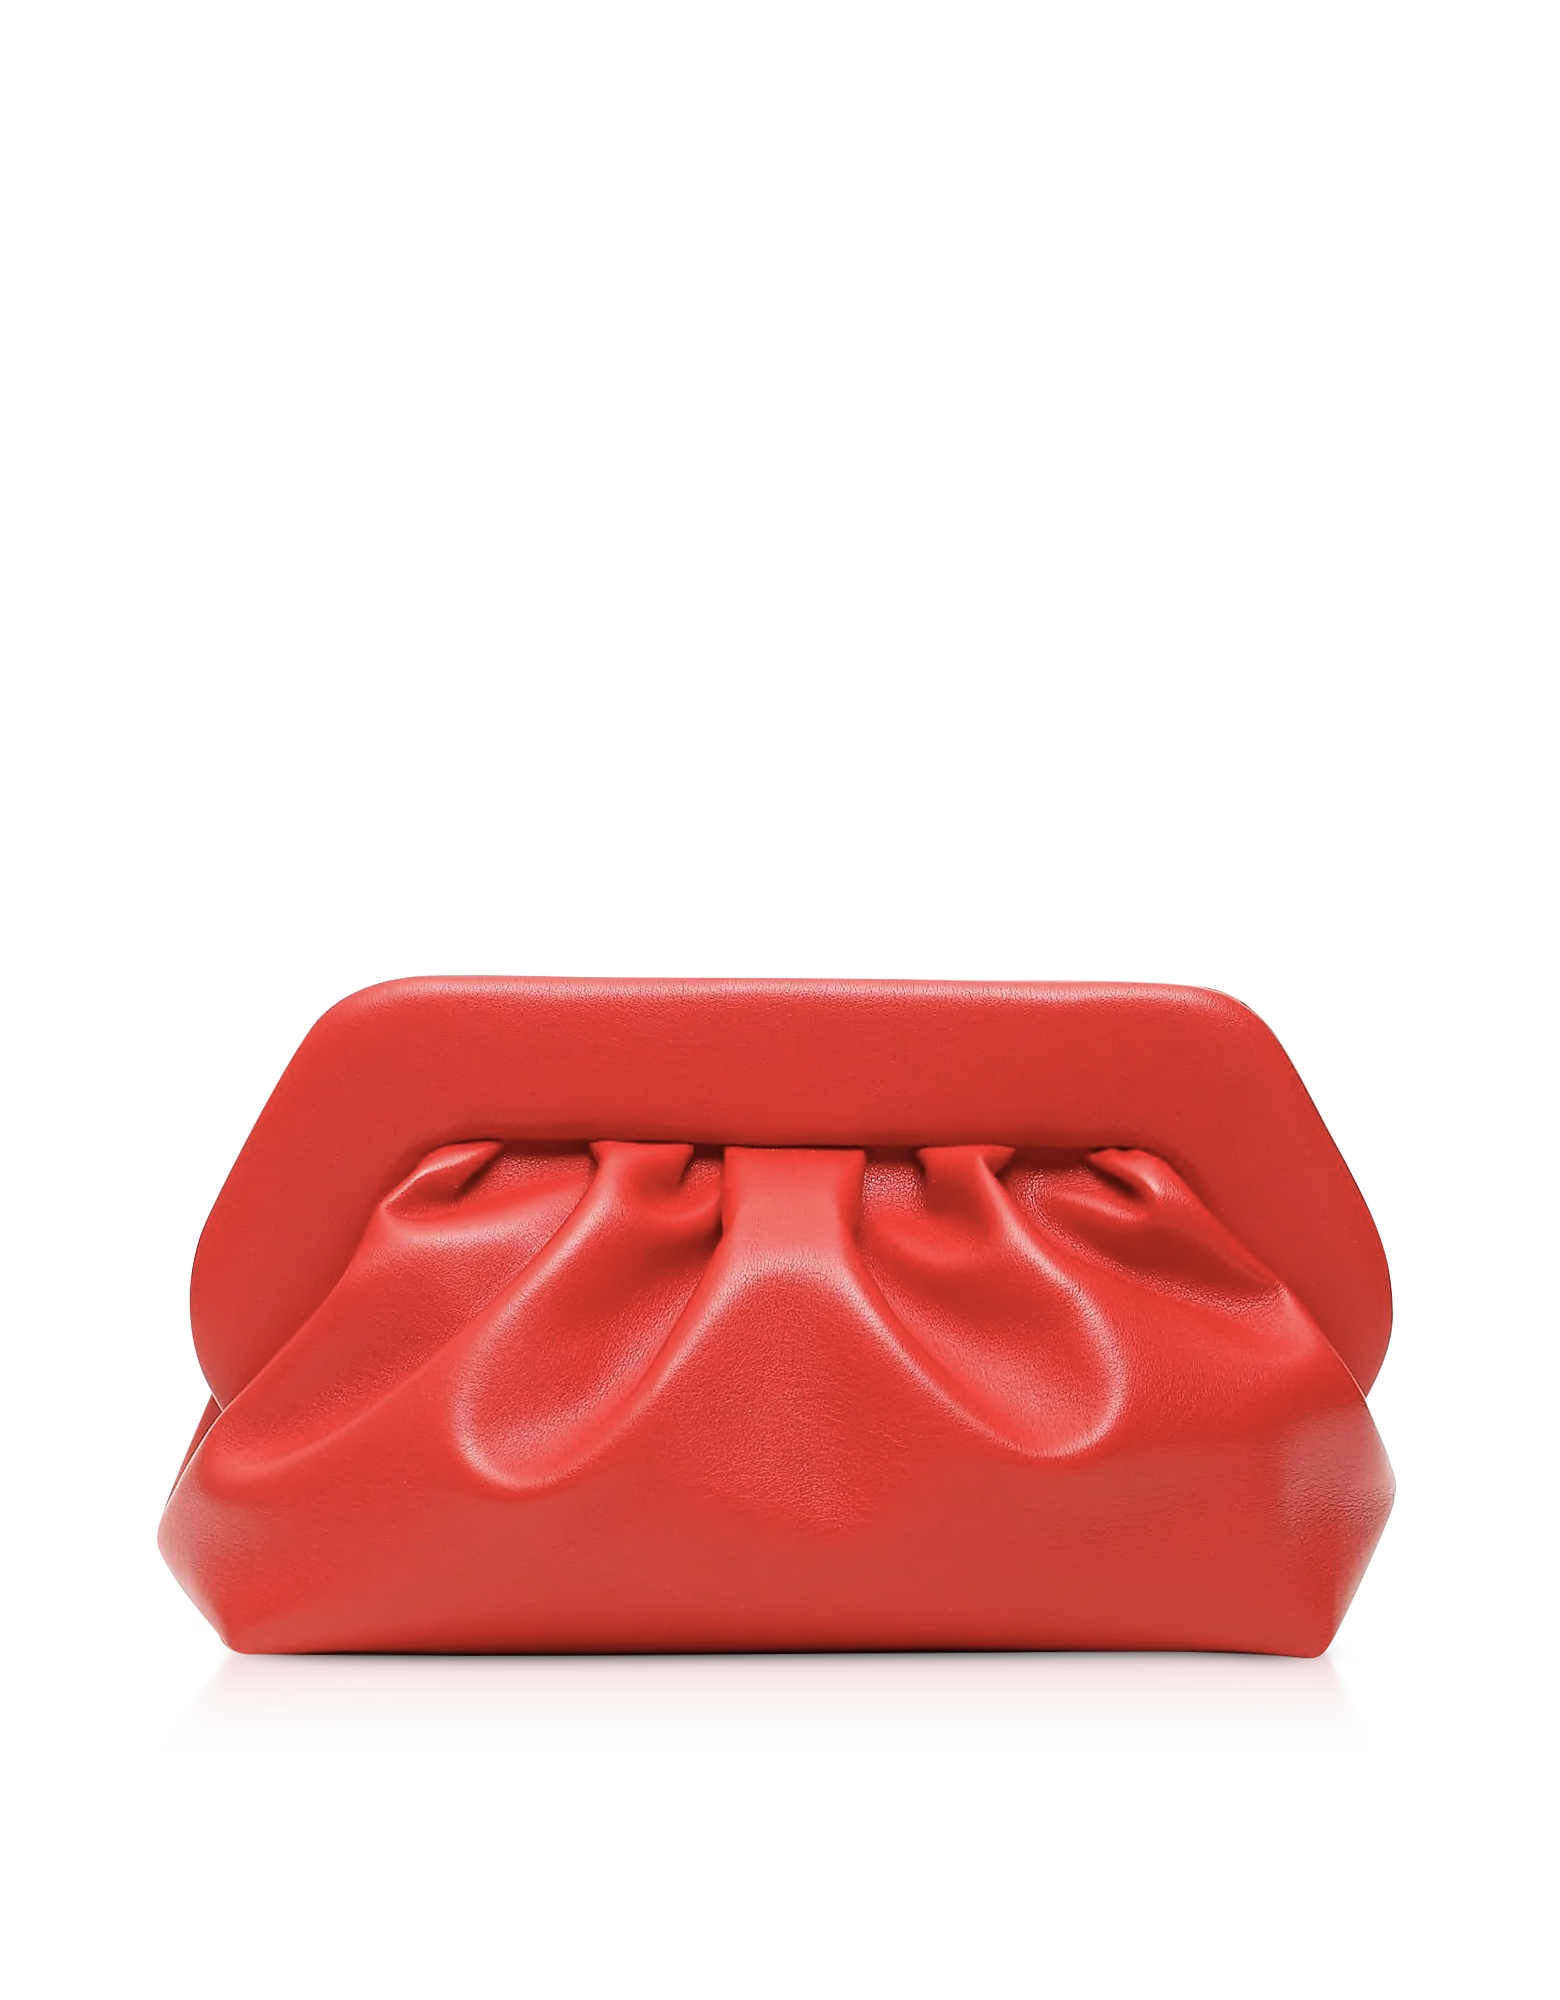 THEMOIRÉ Designer Handbags, Red Eco-Leather Pouch Bag